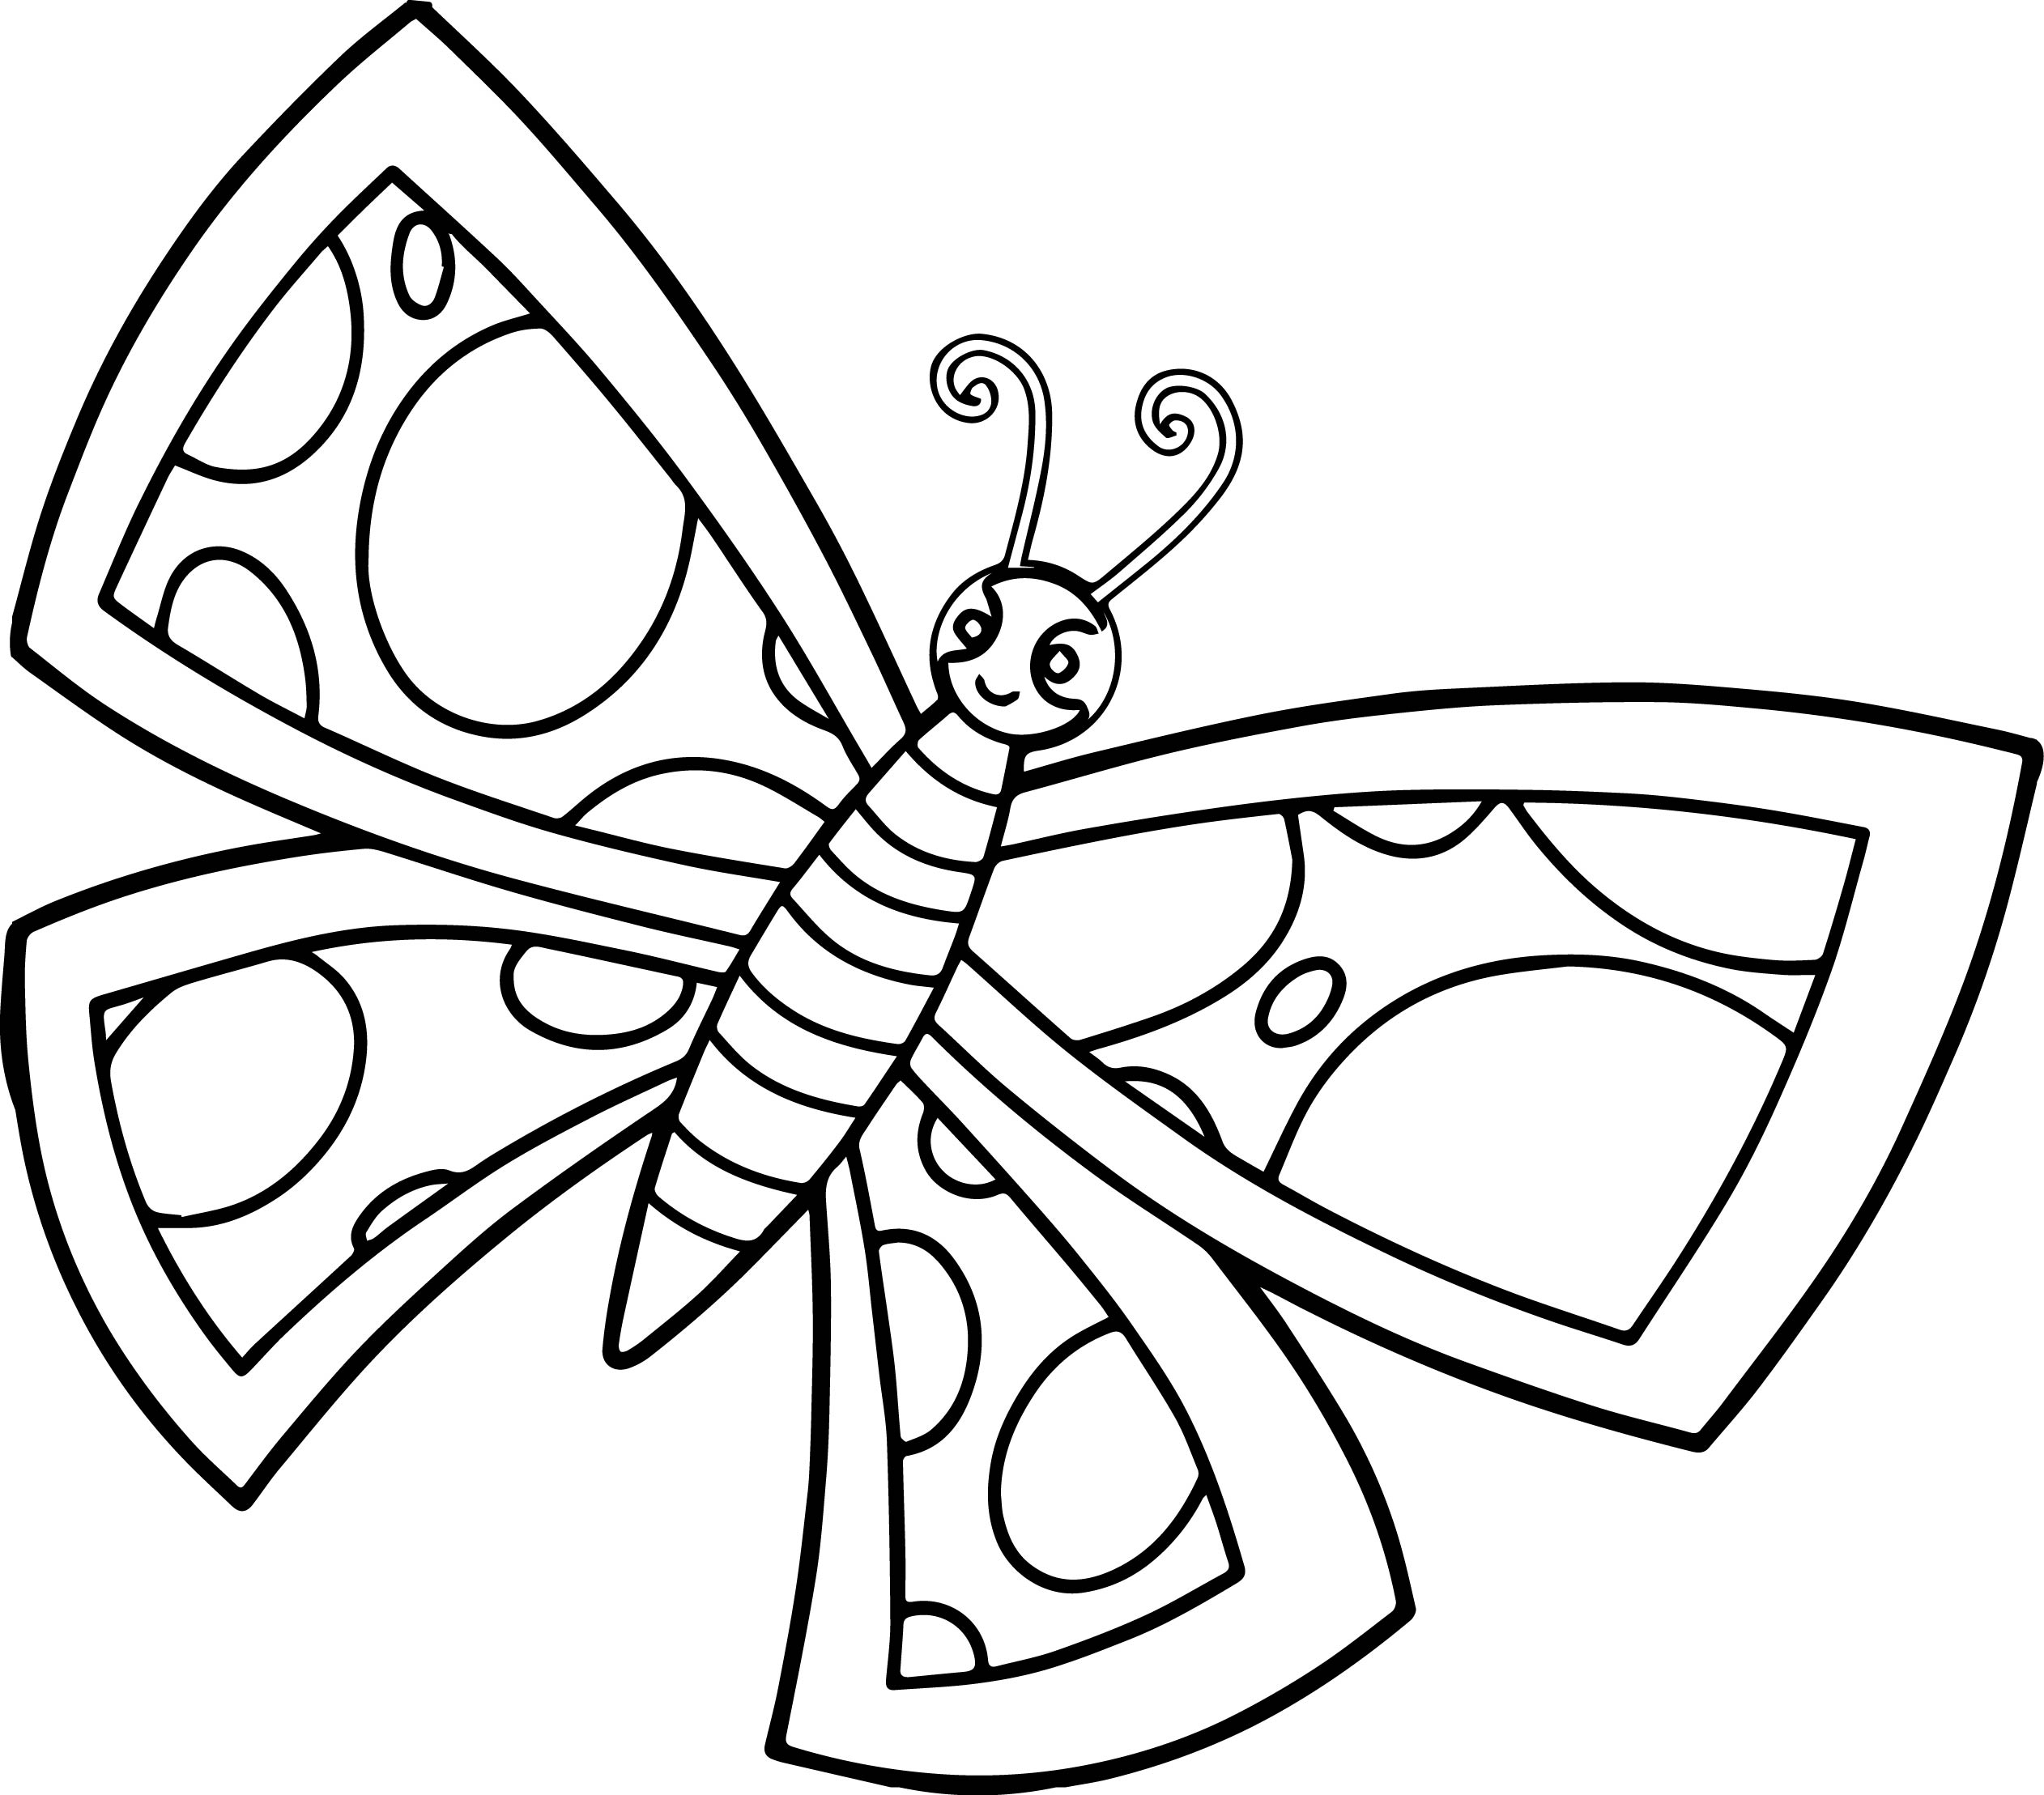 100 ideas Cute Butterfly Coloring Pages on gerardduchemann